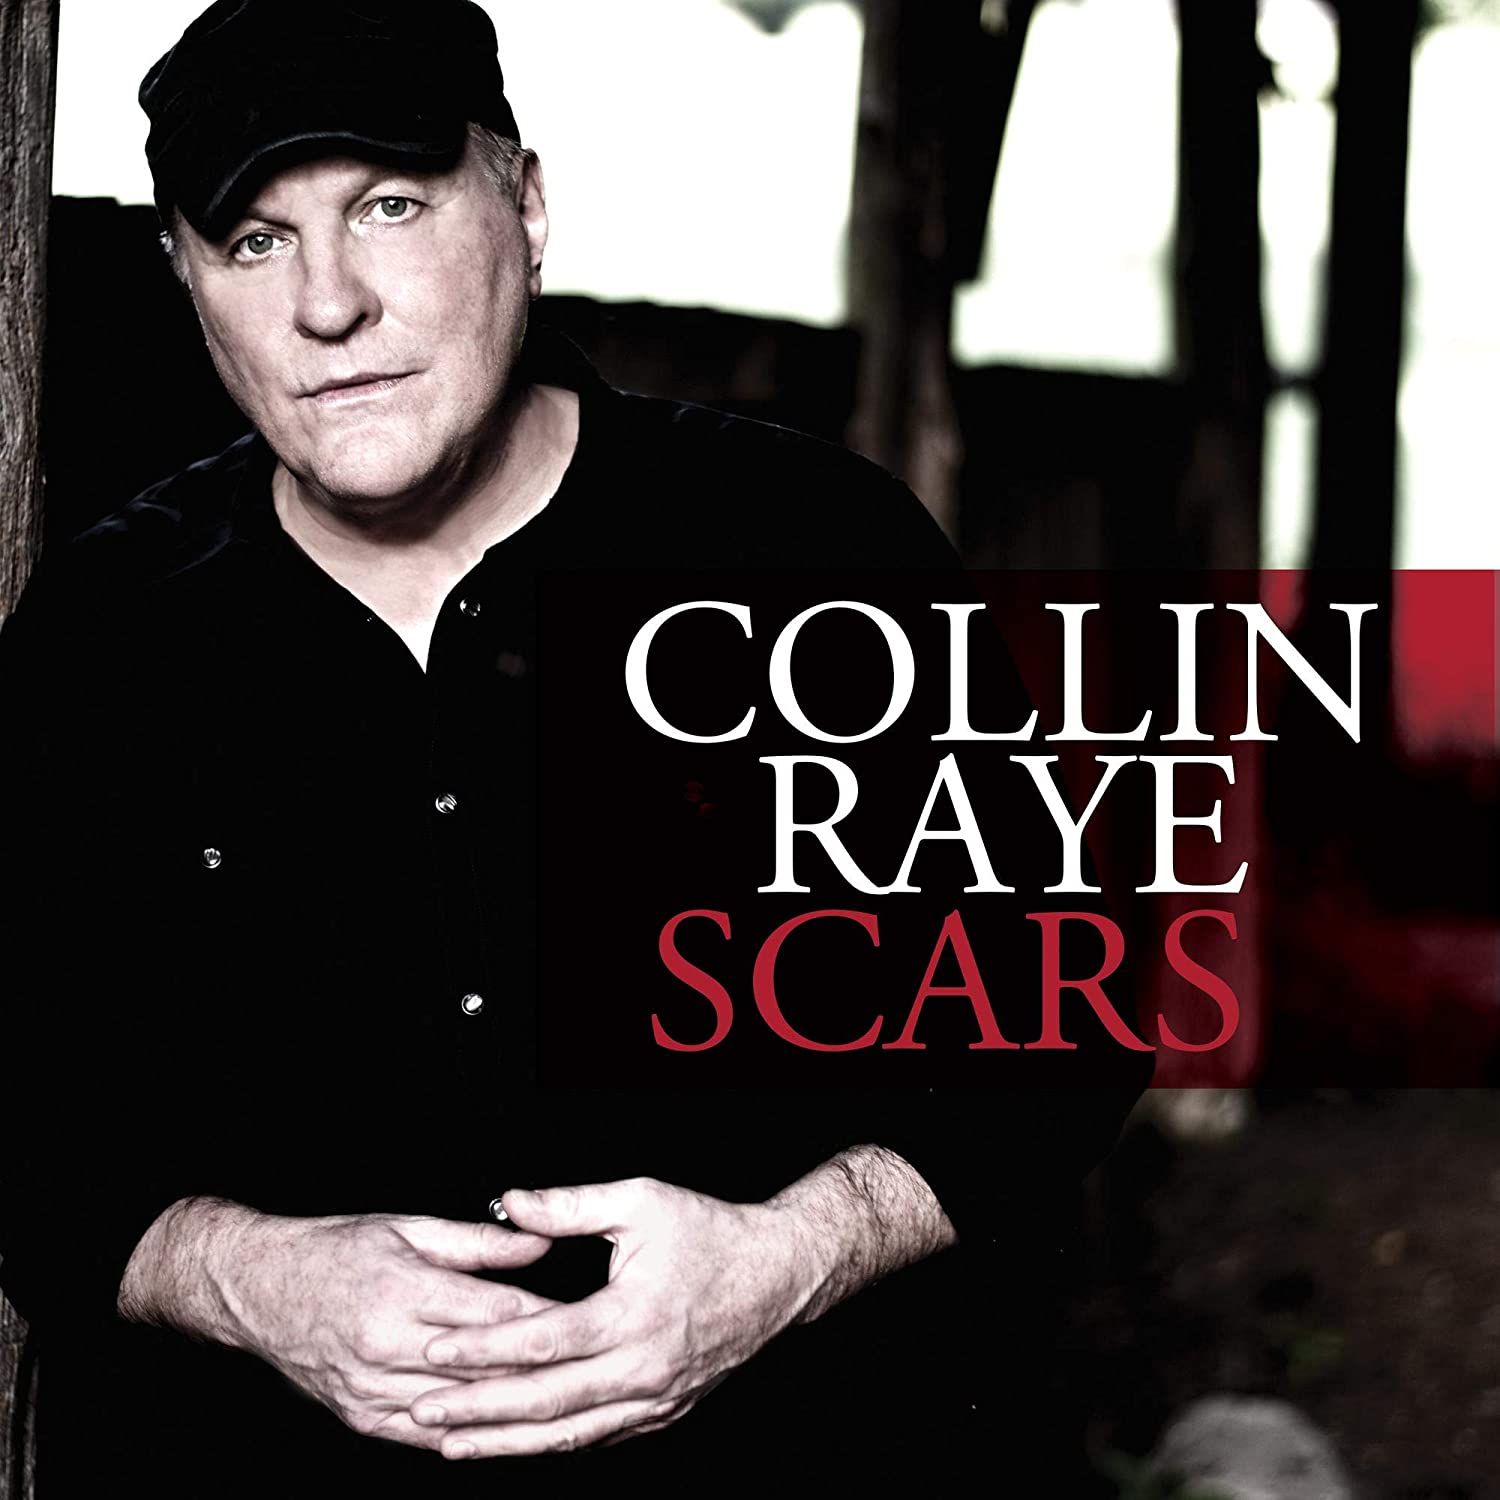 Collin Raye - Scars - Amazon.com Music